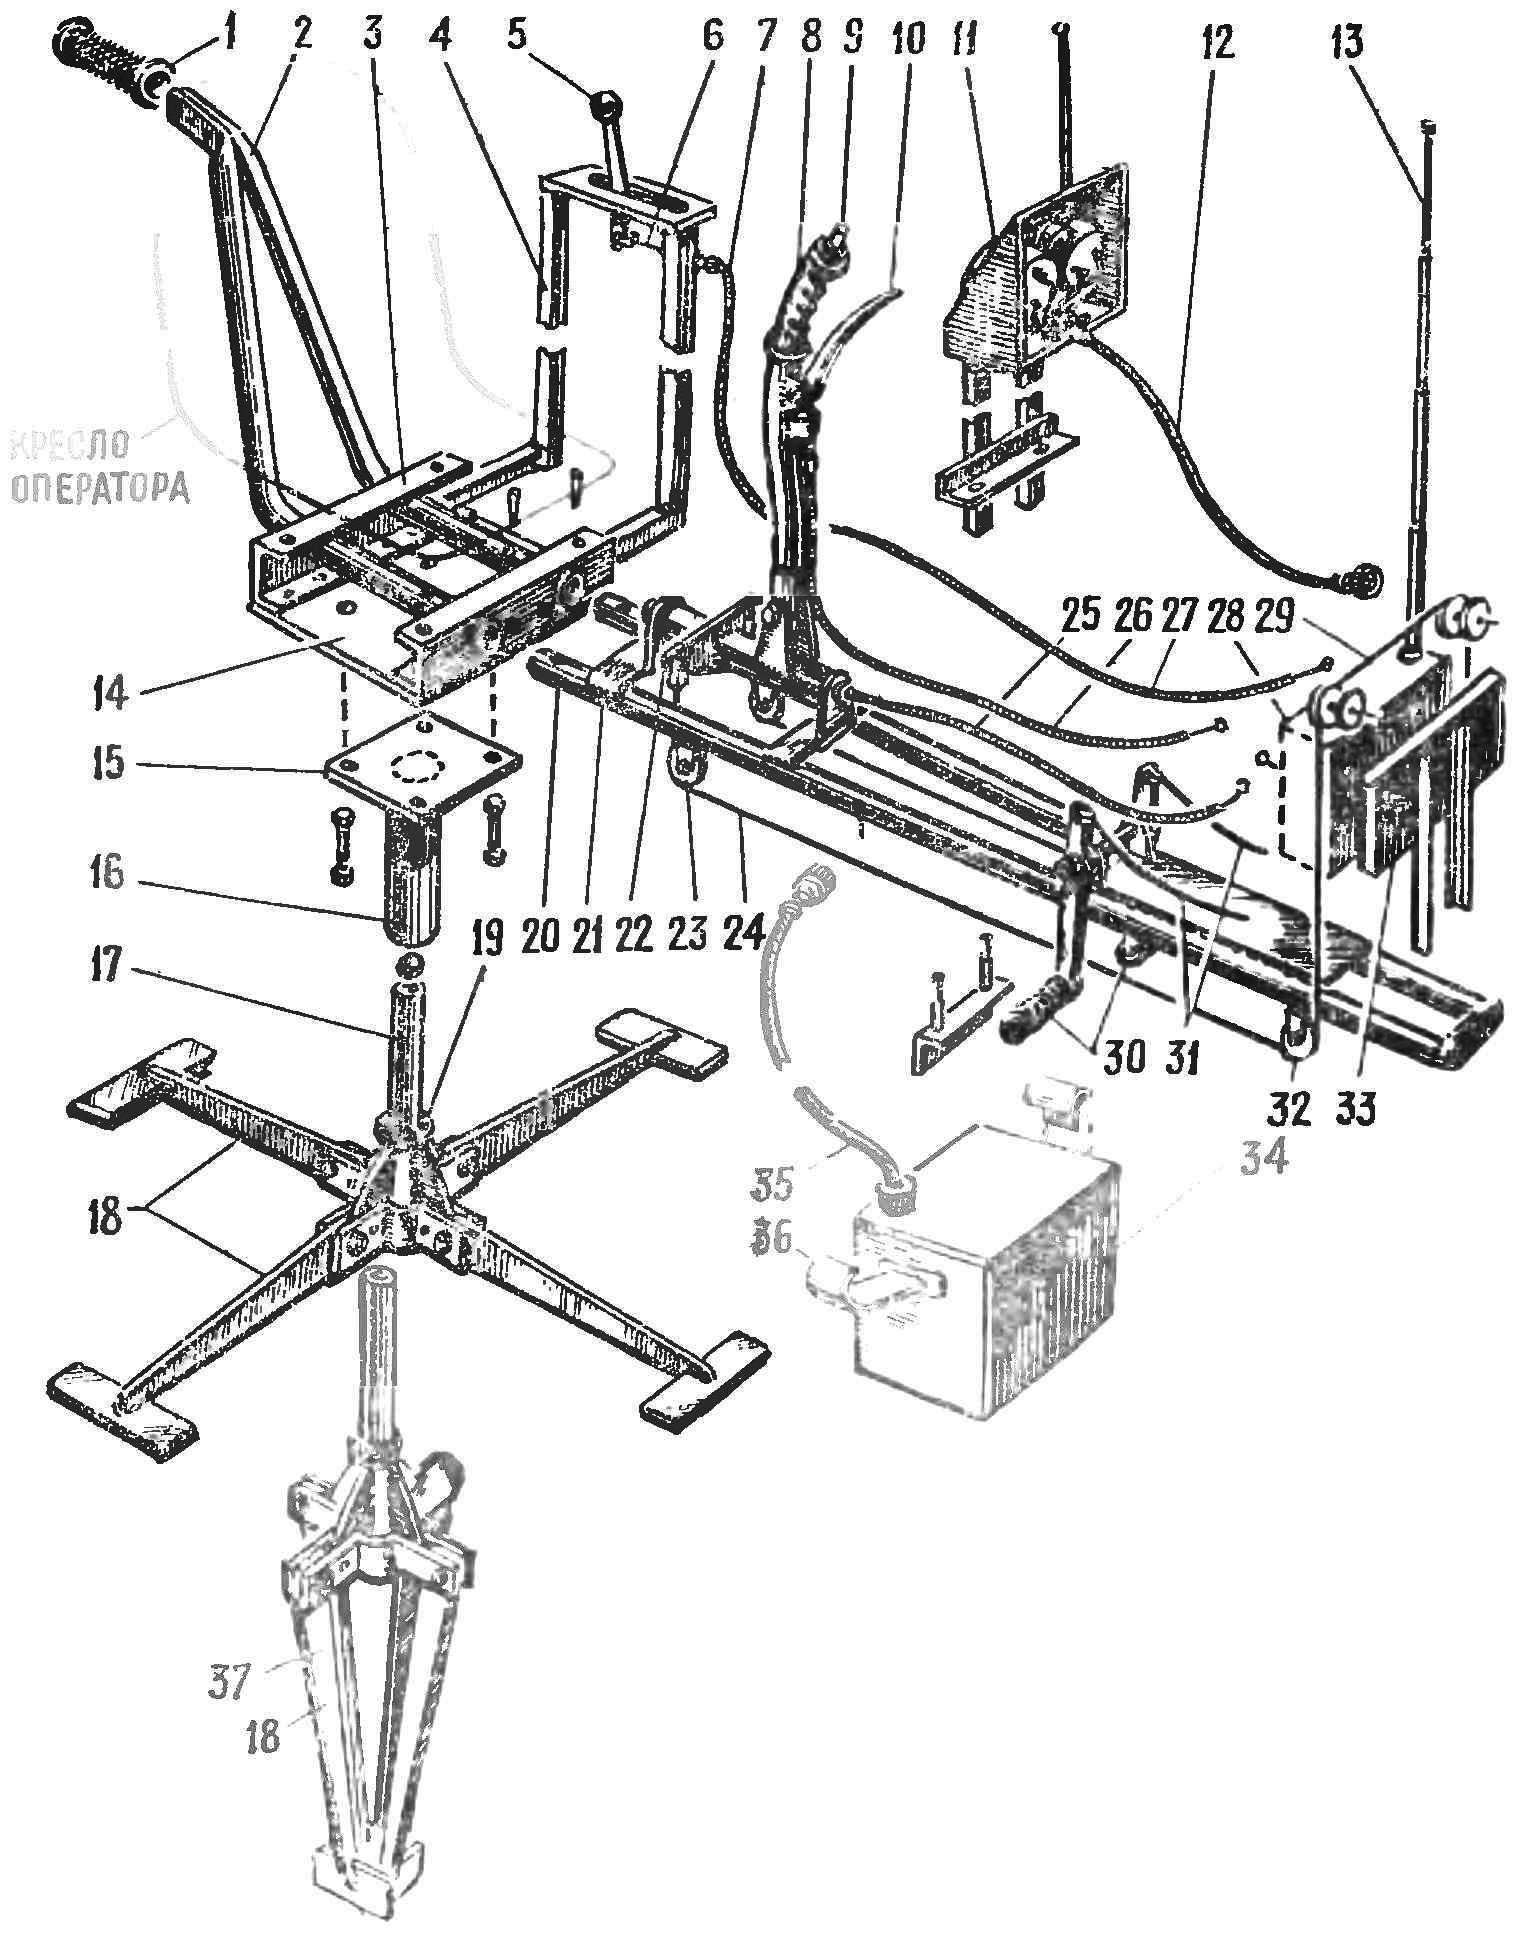 Fig. 1. The overall layout of the chairs with a predominant use of metal parts